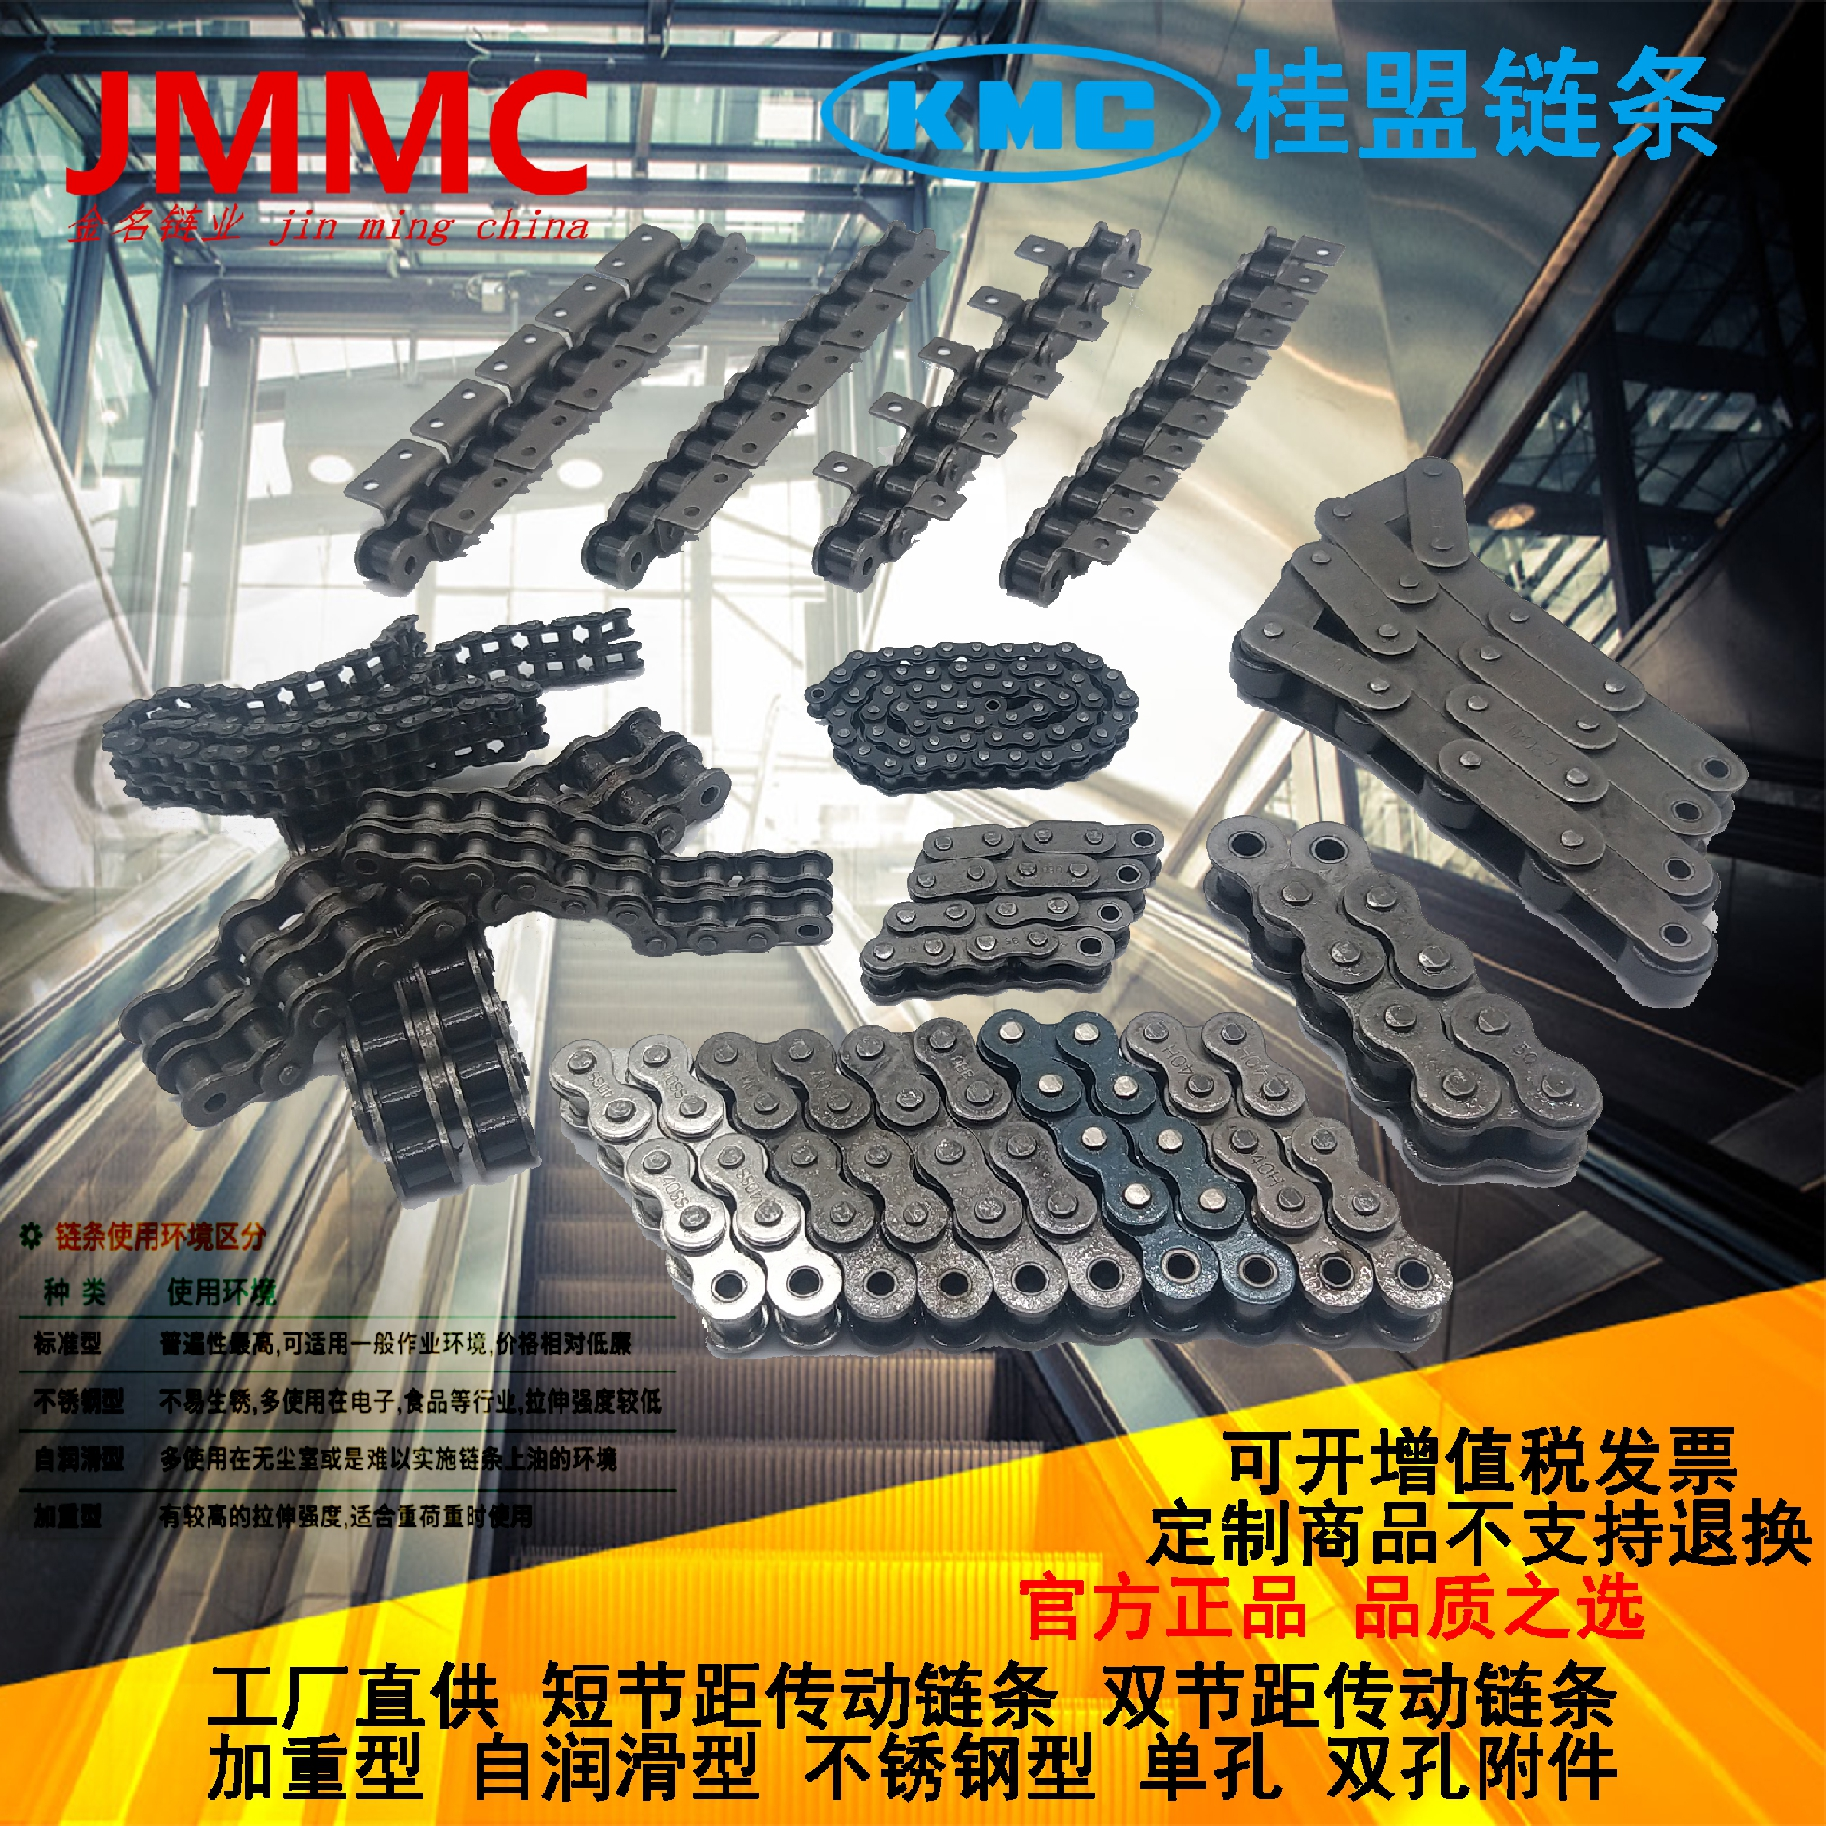 KMC rs50ss-1r 10a-1 super chain guimeng chain stainless steel a series single row transmission chain